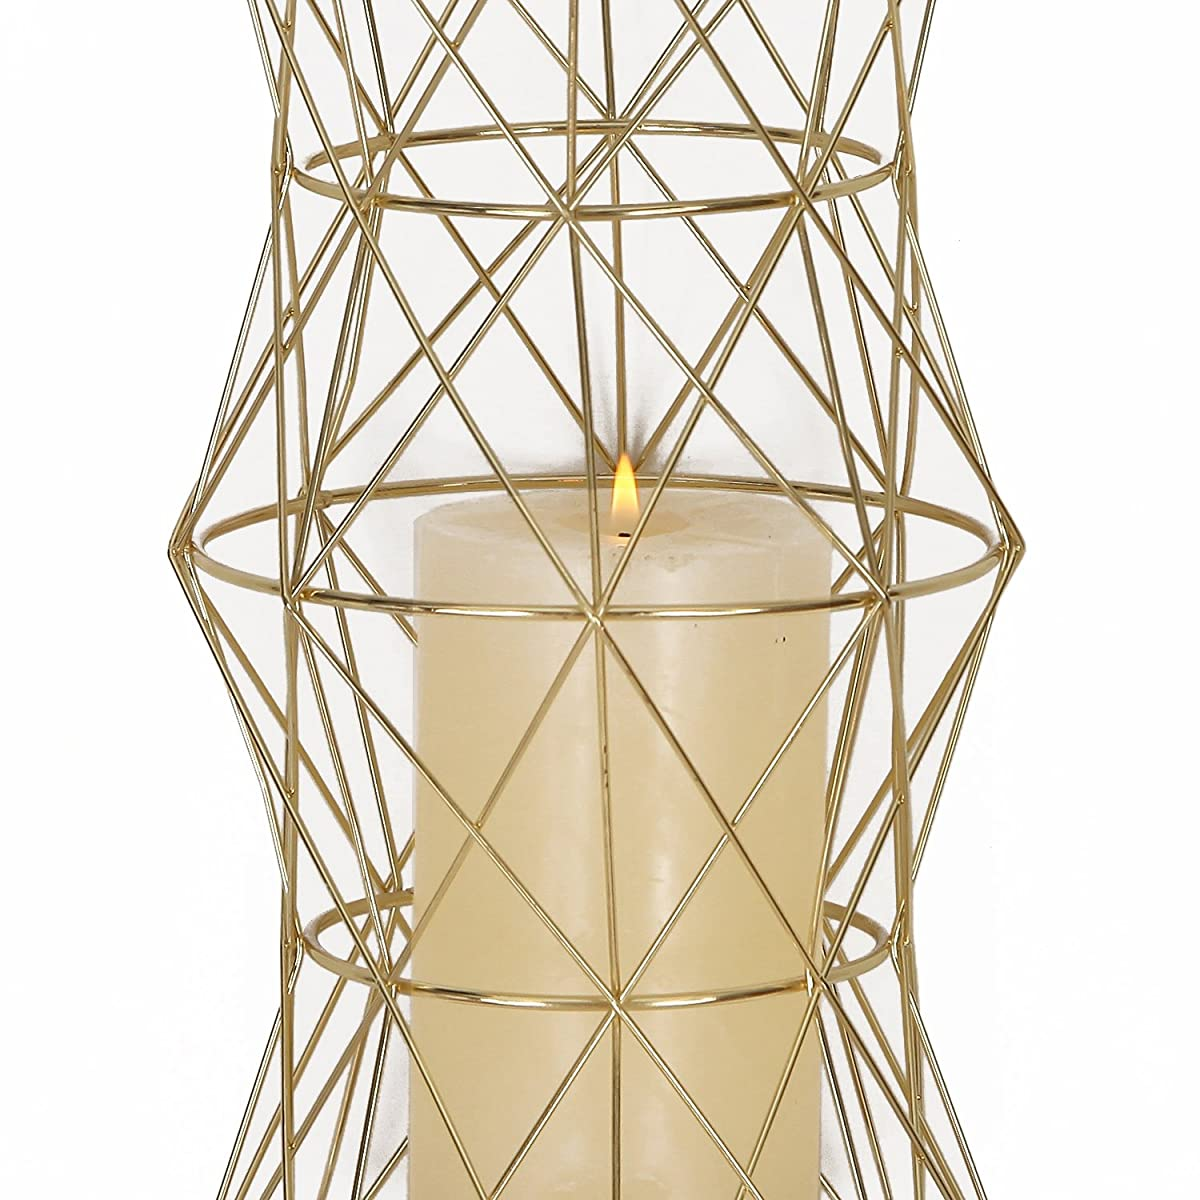 Homebeez Hurricane Pillar Candle Holder, Set of 2 Gold Wire Candle Holders